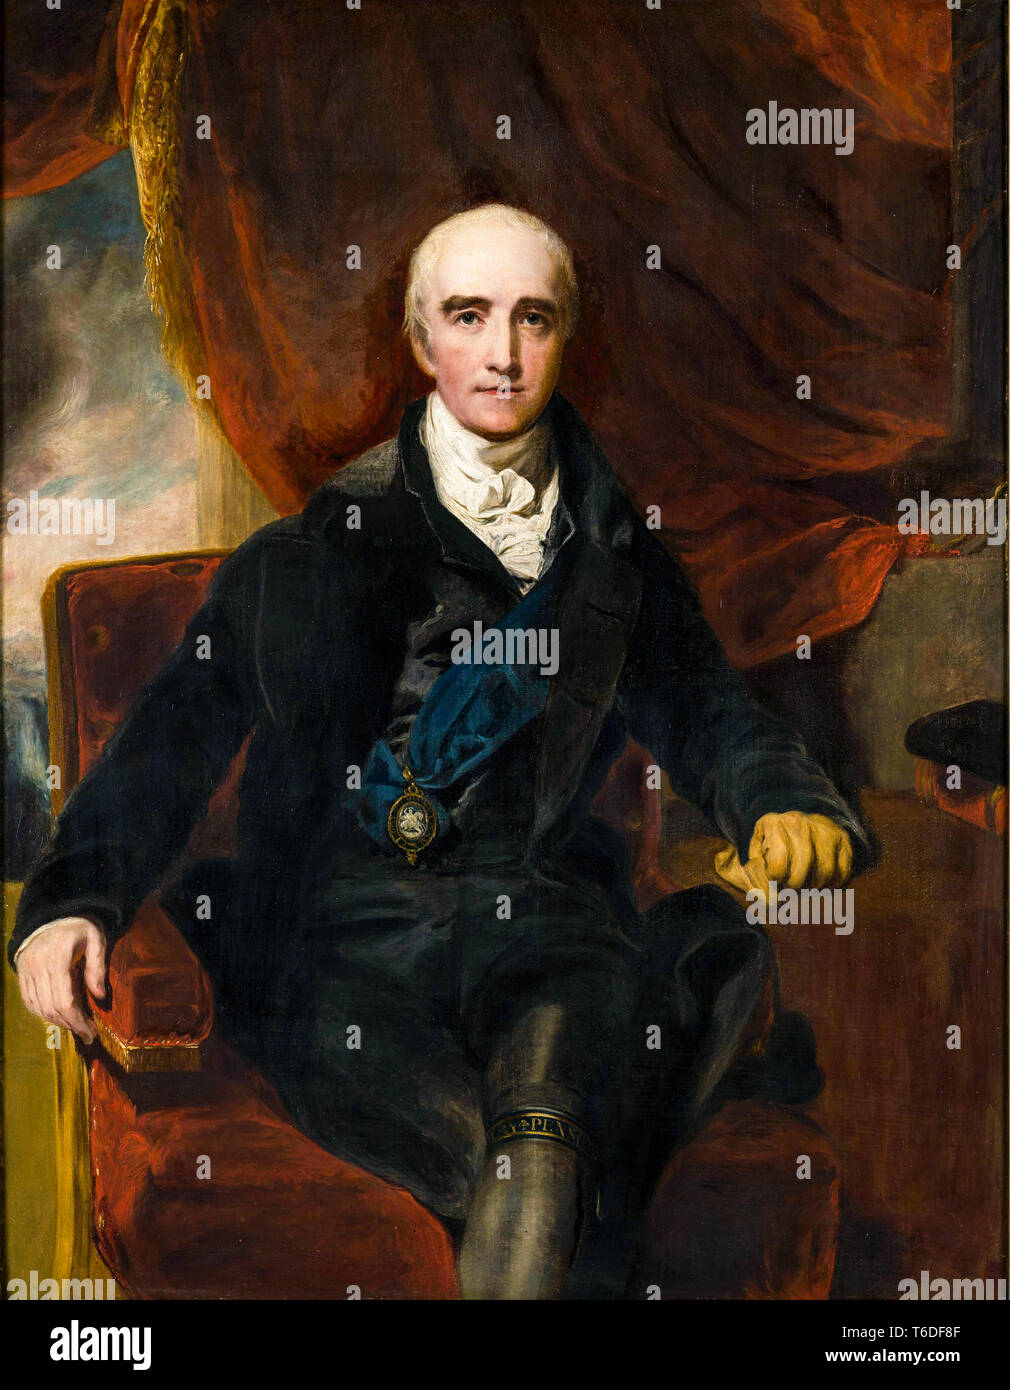 Portrait of Richard Colley Wellesley,1st Marquess Wellesley, Governor-General of India 1798-1805 (1760-1842), Studio of Thomas Lawrence, c. 1813 - Stock Image